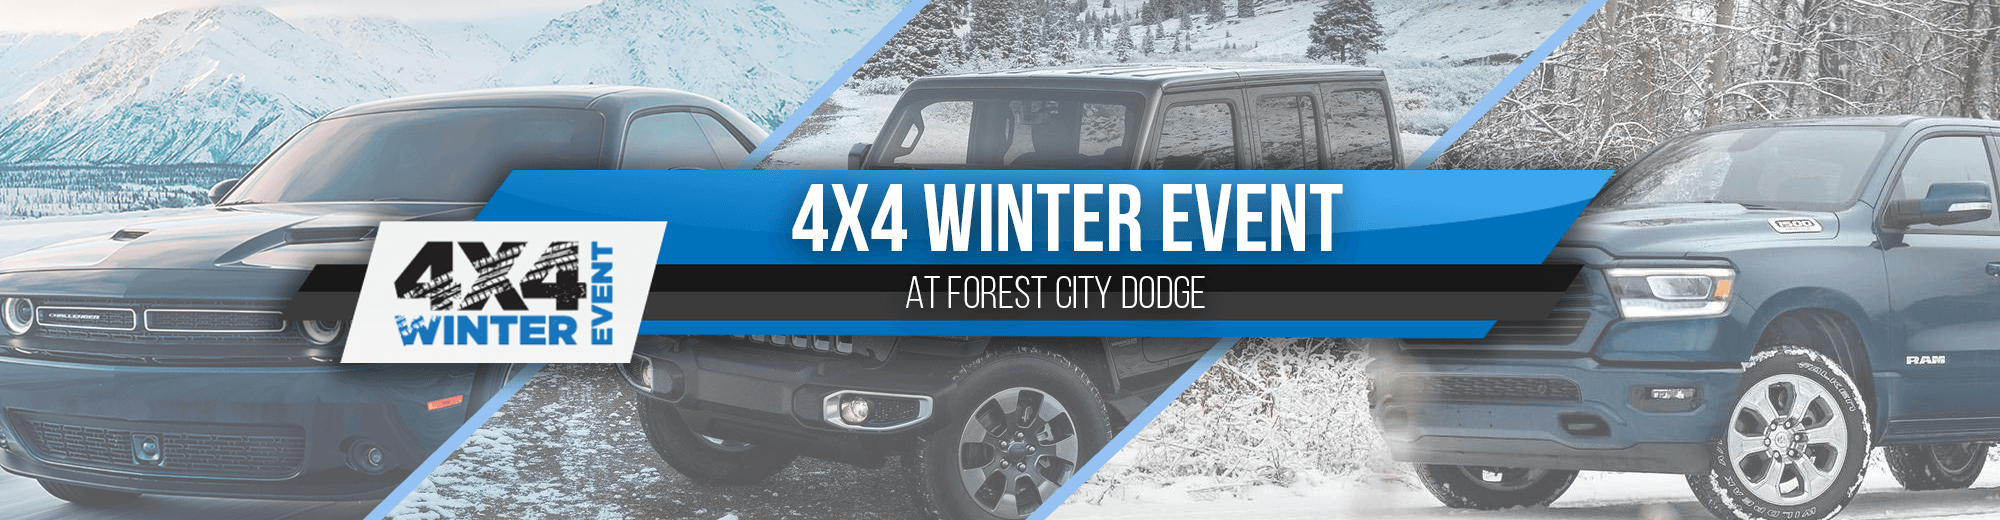 The Winter 4x4 Event